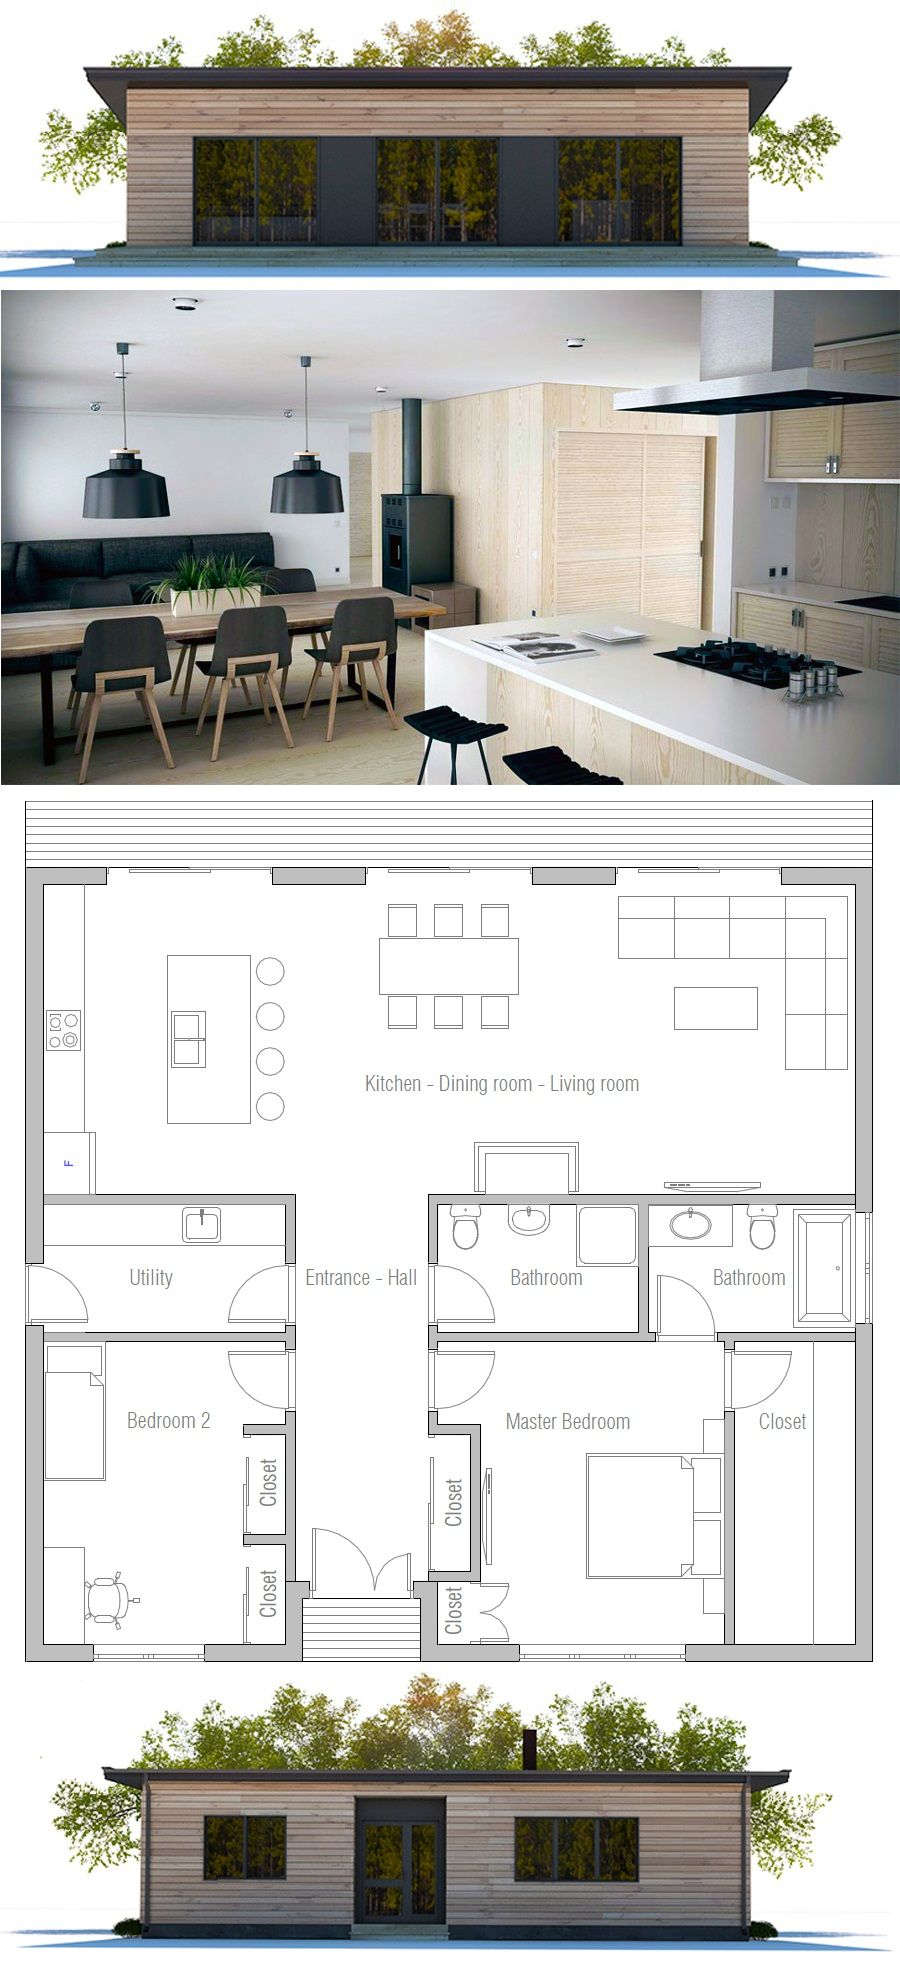 Two bedroom house plan also ideas for the pinterest rh za